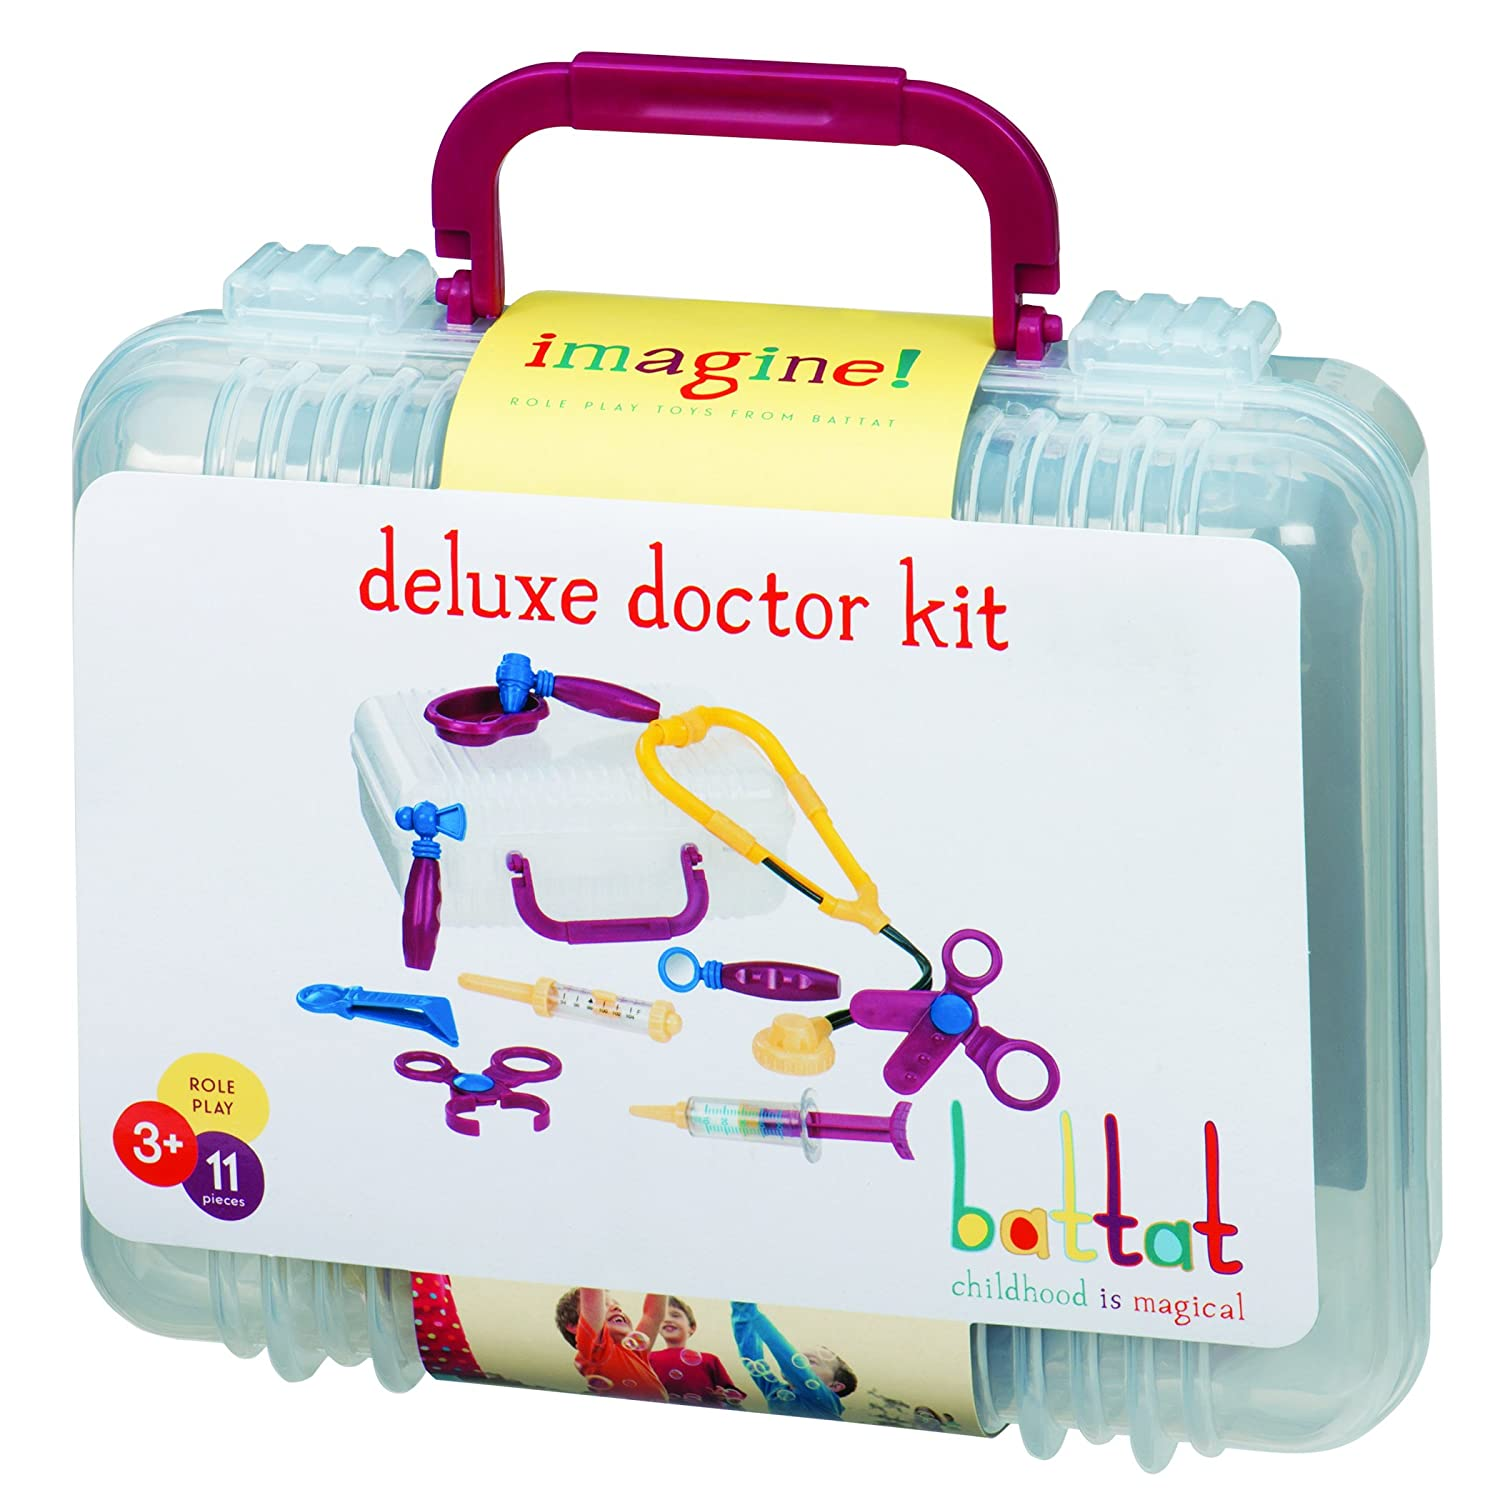 Battat - Deluxe Doctor - Toy Medical Kit for Kids (11 Pieces) Branford LTD BT2537Z